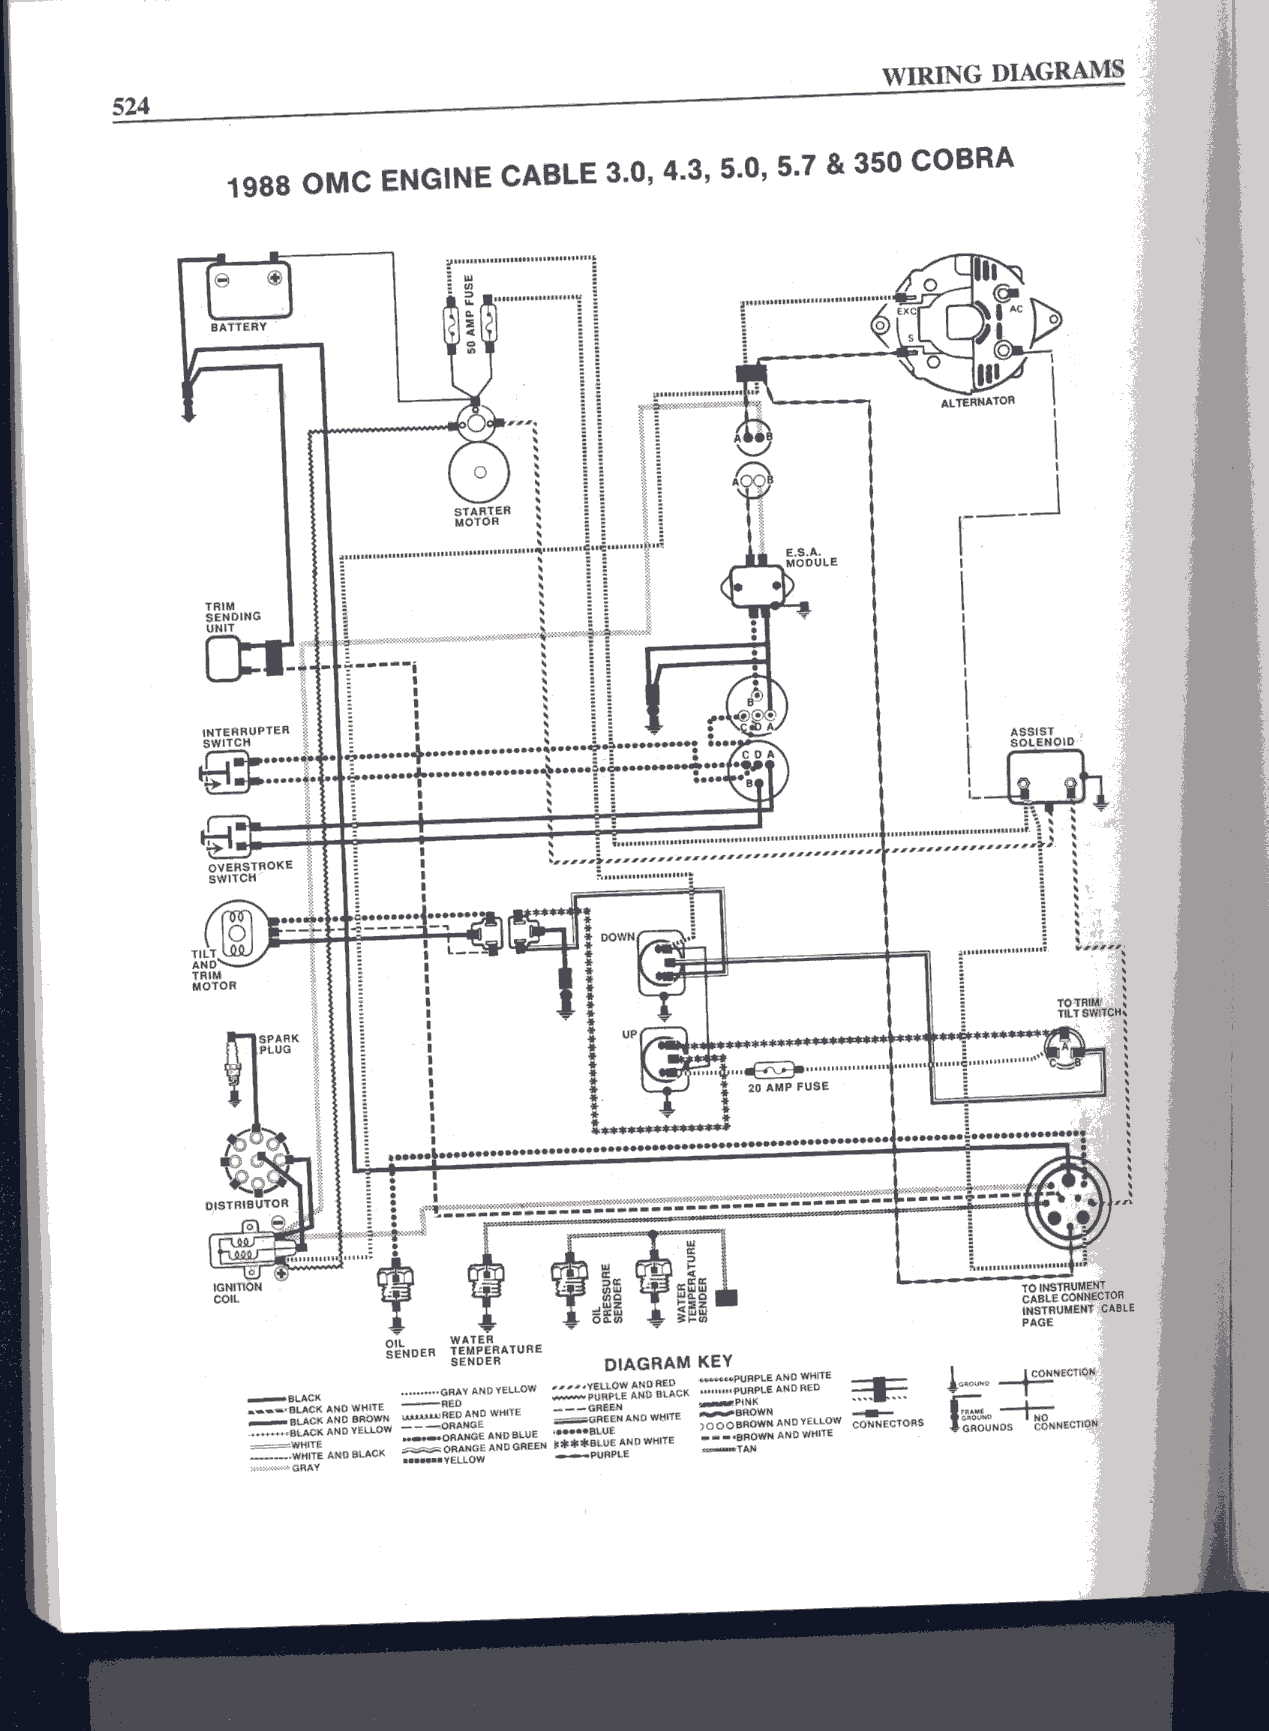 Can Anyone One Tell Me Where To Find A Color Coded Wire Diagram For Omc Marine Alternator Wiring Graphic